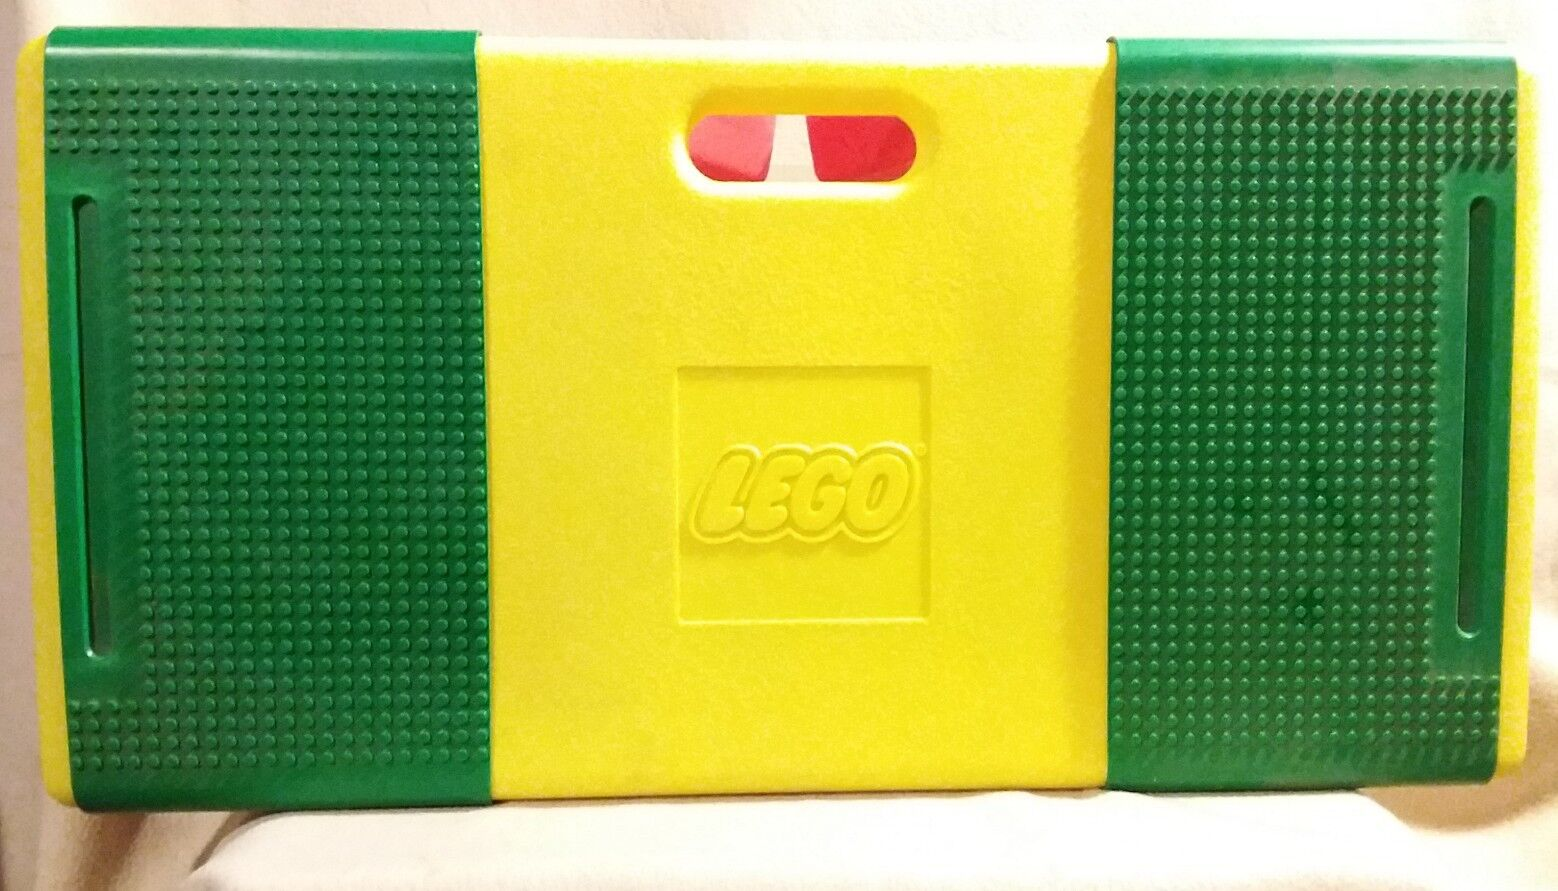 LEGO  Portable Lap Table with Lego's by Lego Toys 1994 Vintage